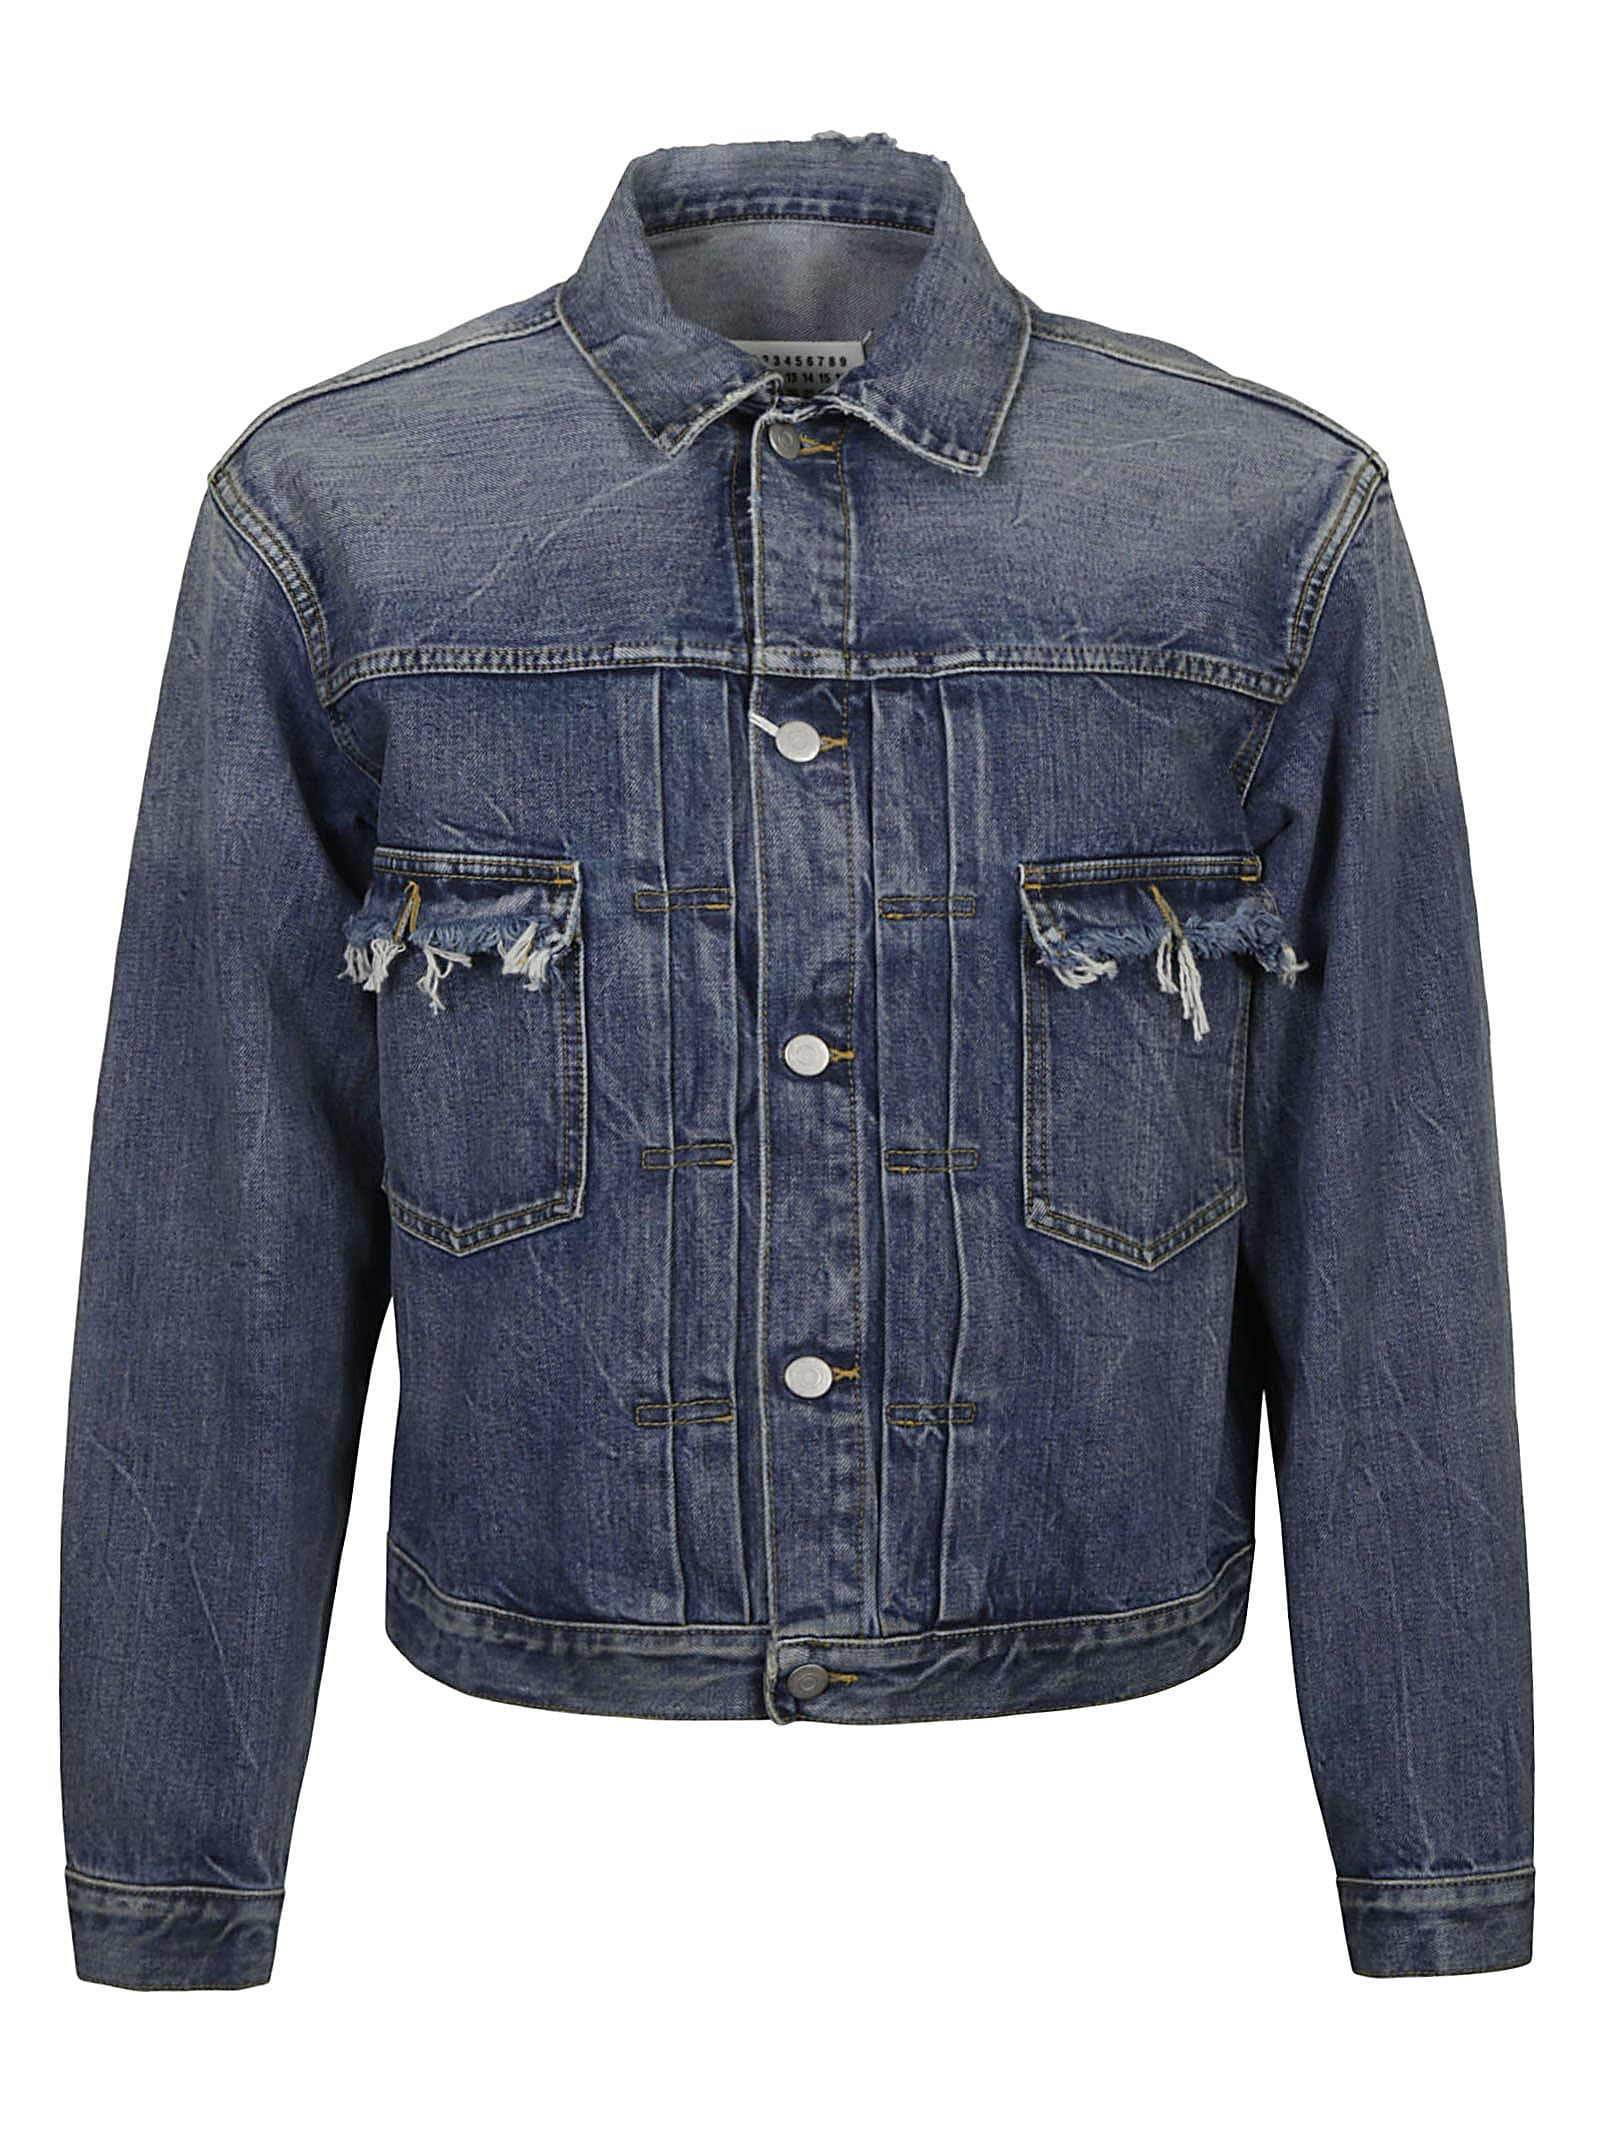 Maison Margiela Classic Denim Jacket